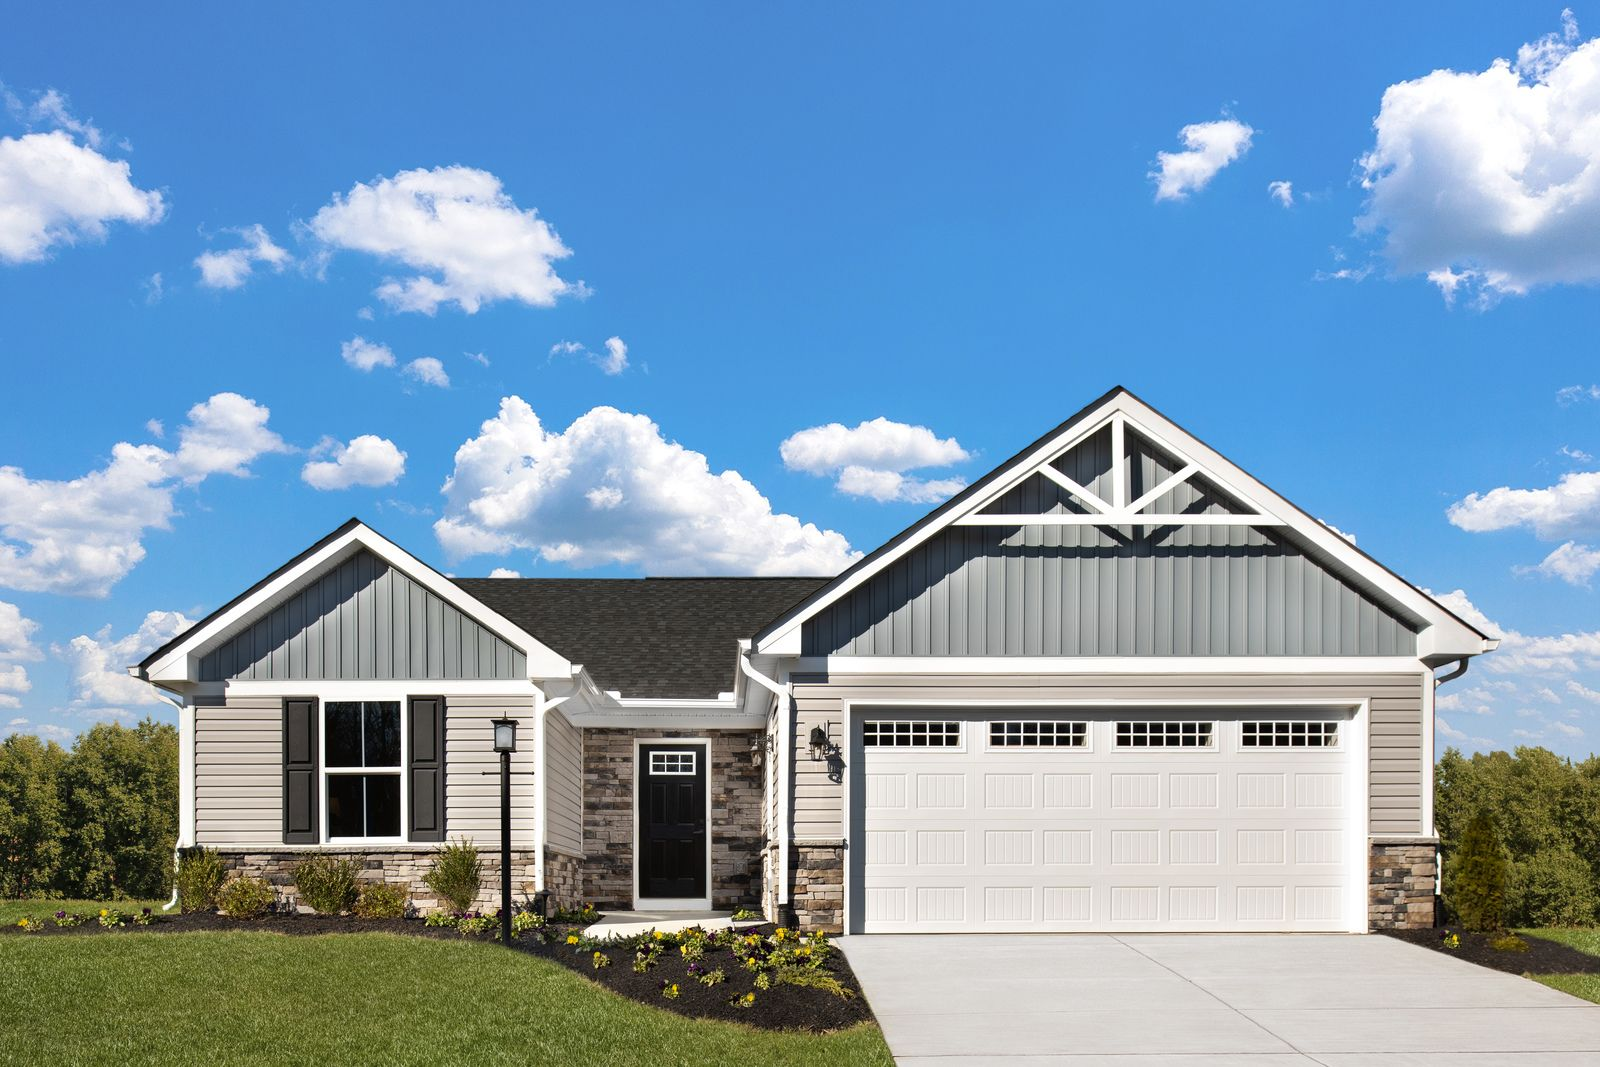 Just 1 Homesite Remaining in this Affordable, Low Maintenance Community